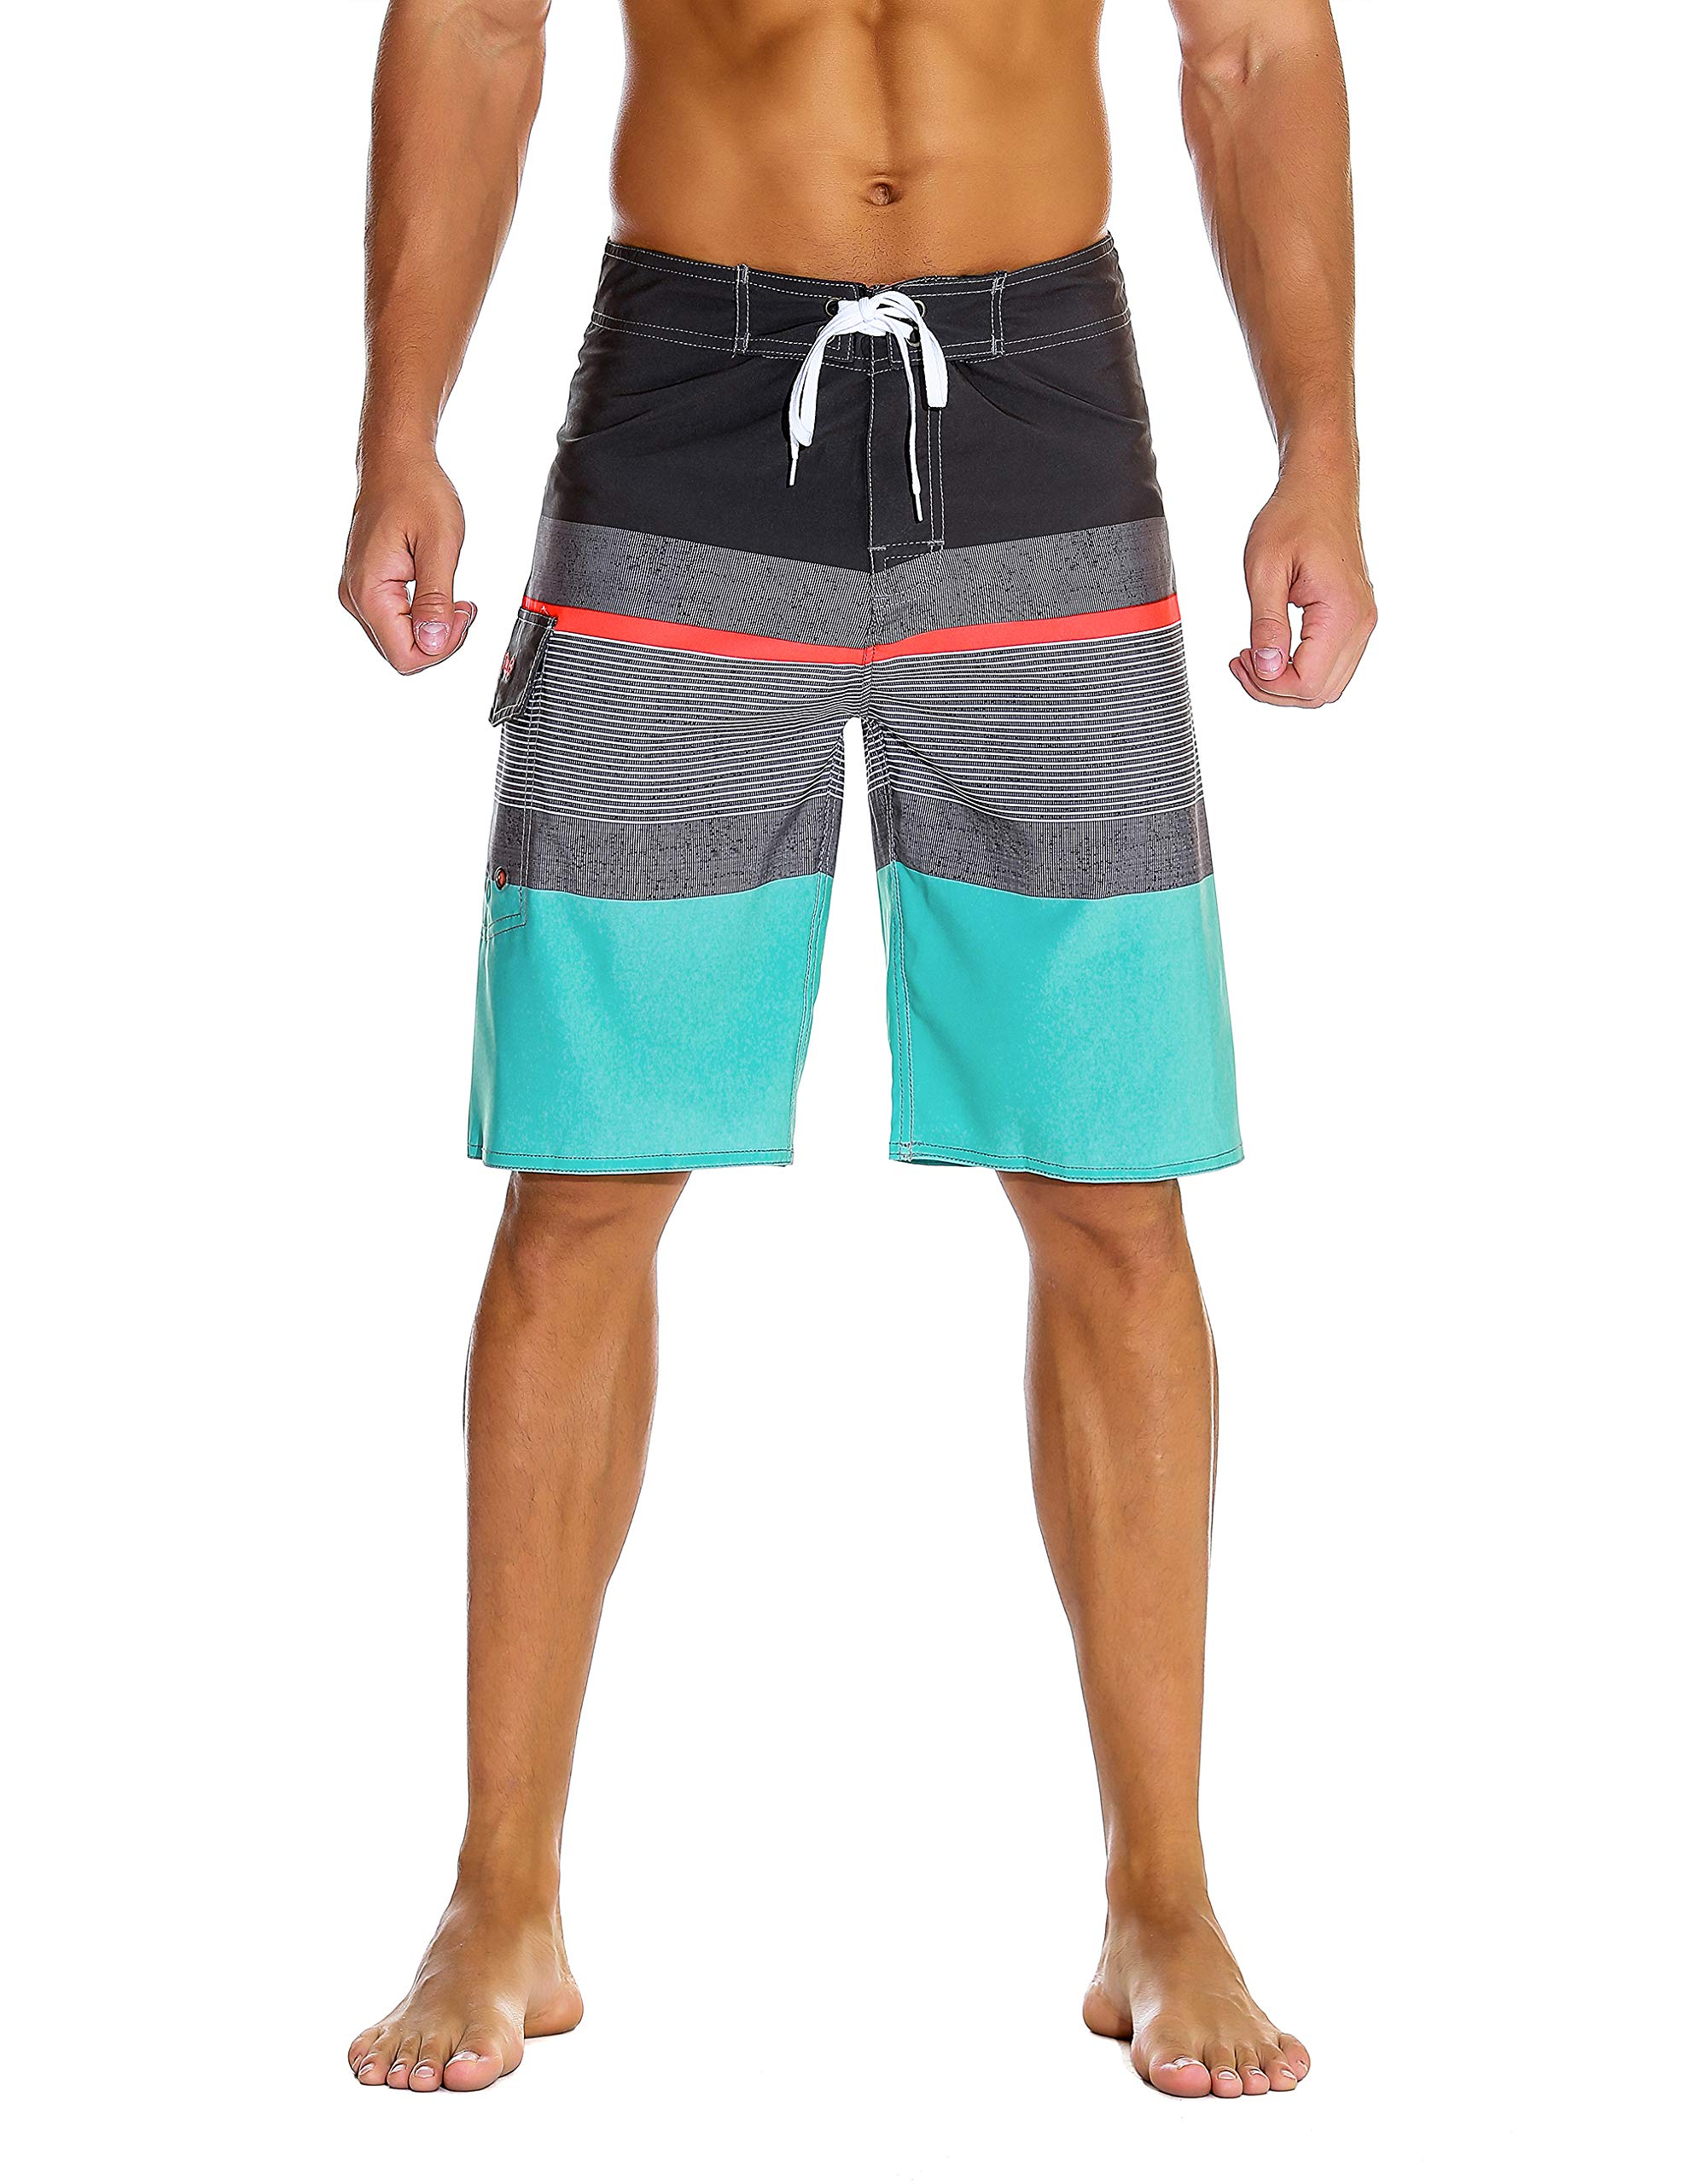 Nonwe Men's Sportwear Quick Dry Board Shorts with Lining Gray 34 by Nonwe